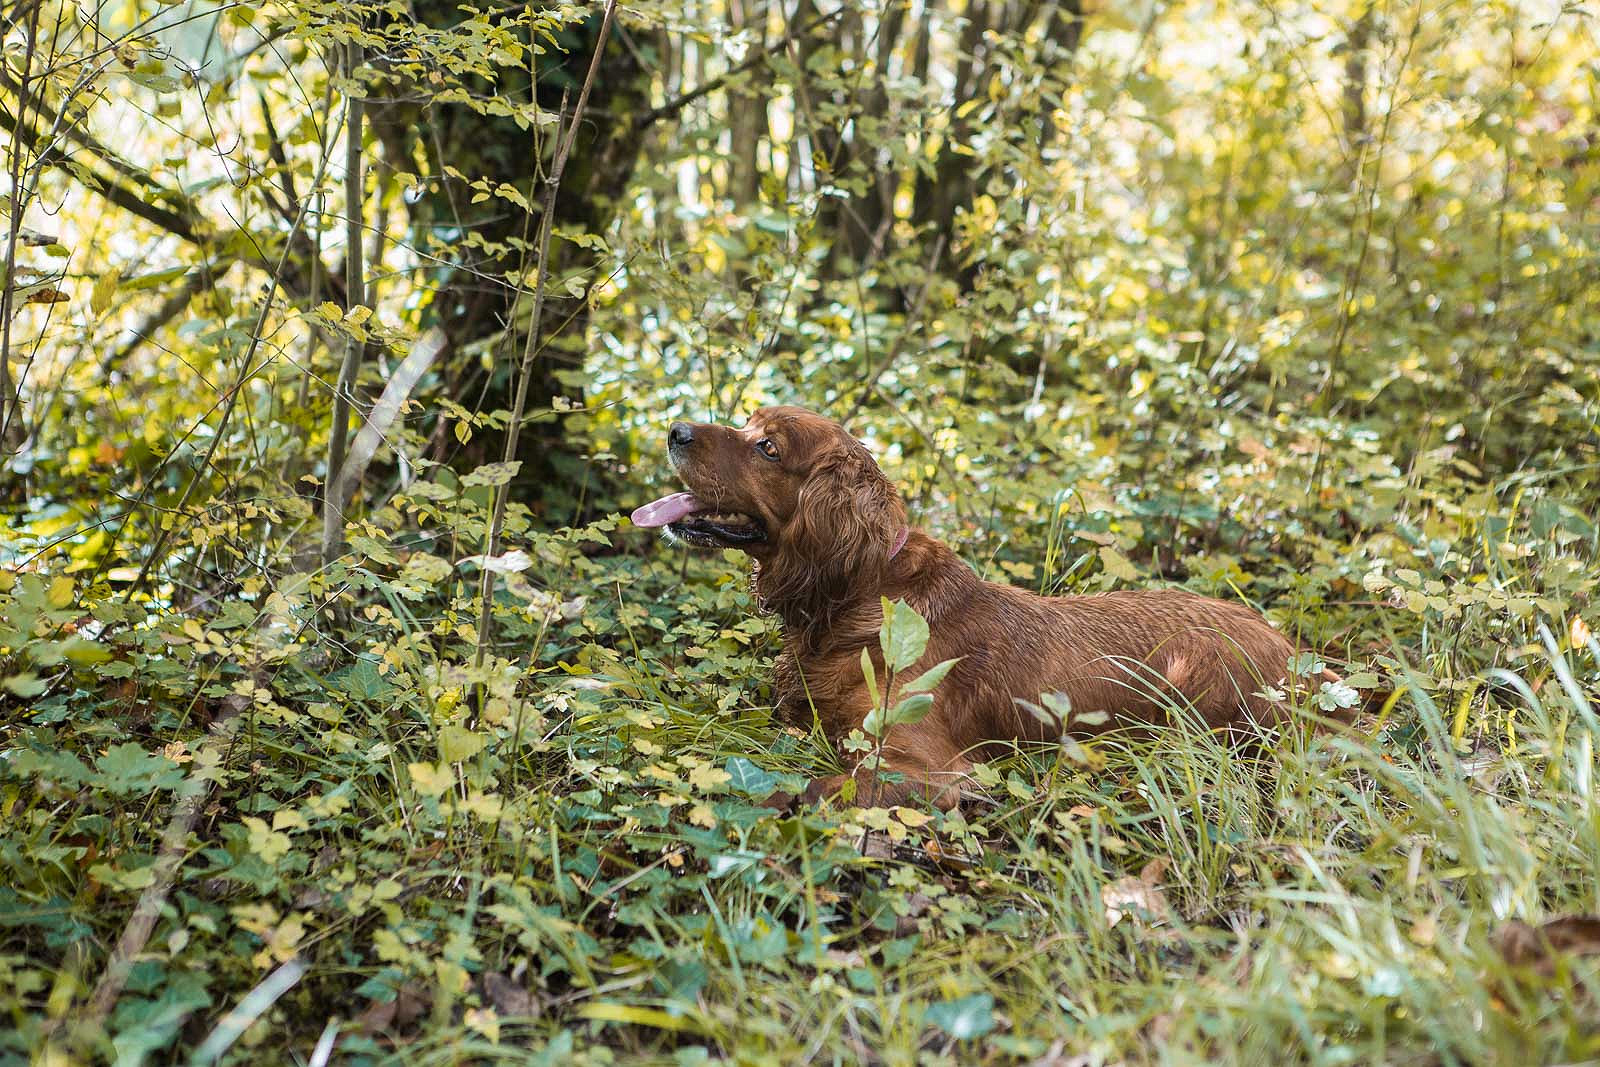 The Truffle Experience: Where to Go Truffle Hunting and Taste Truffles in Istria